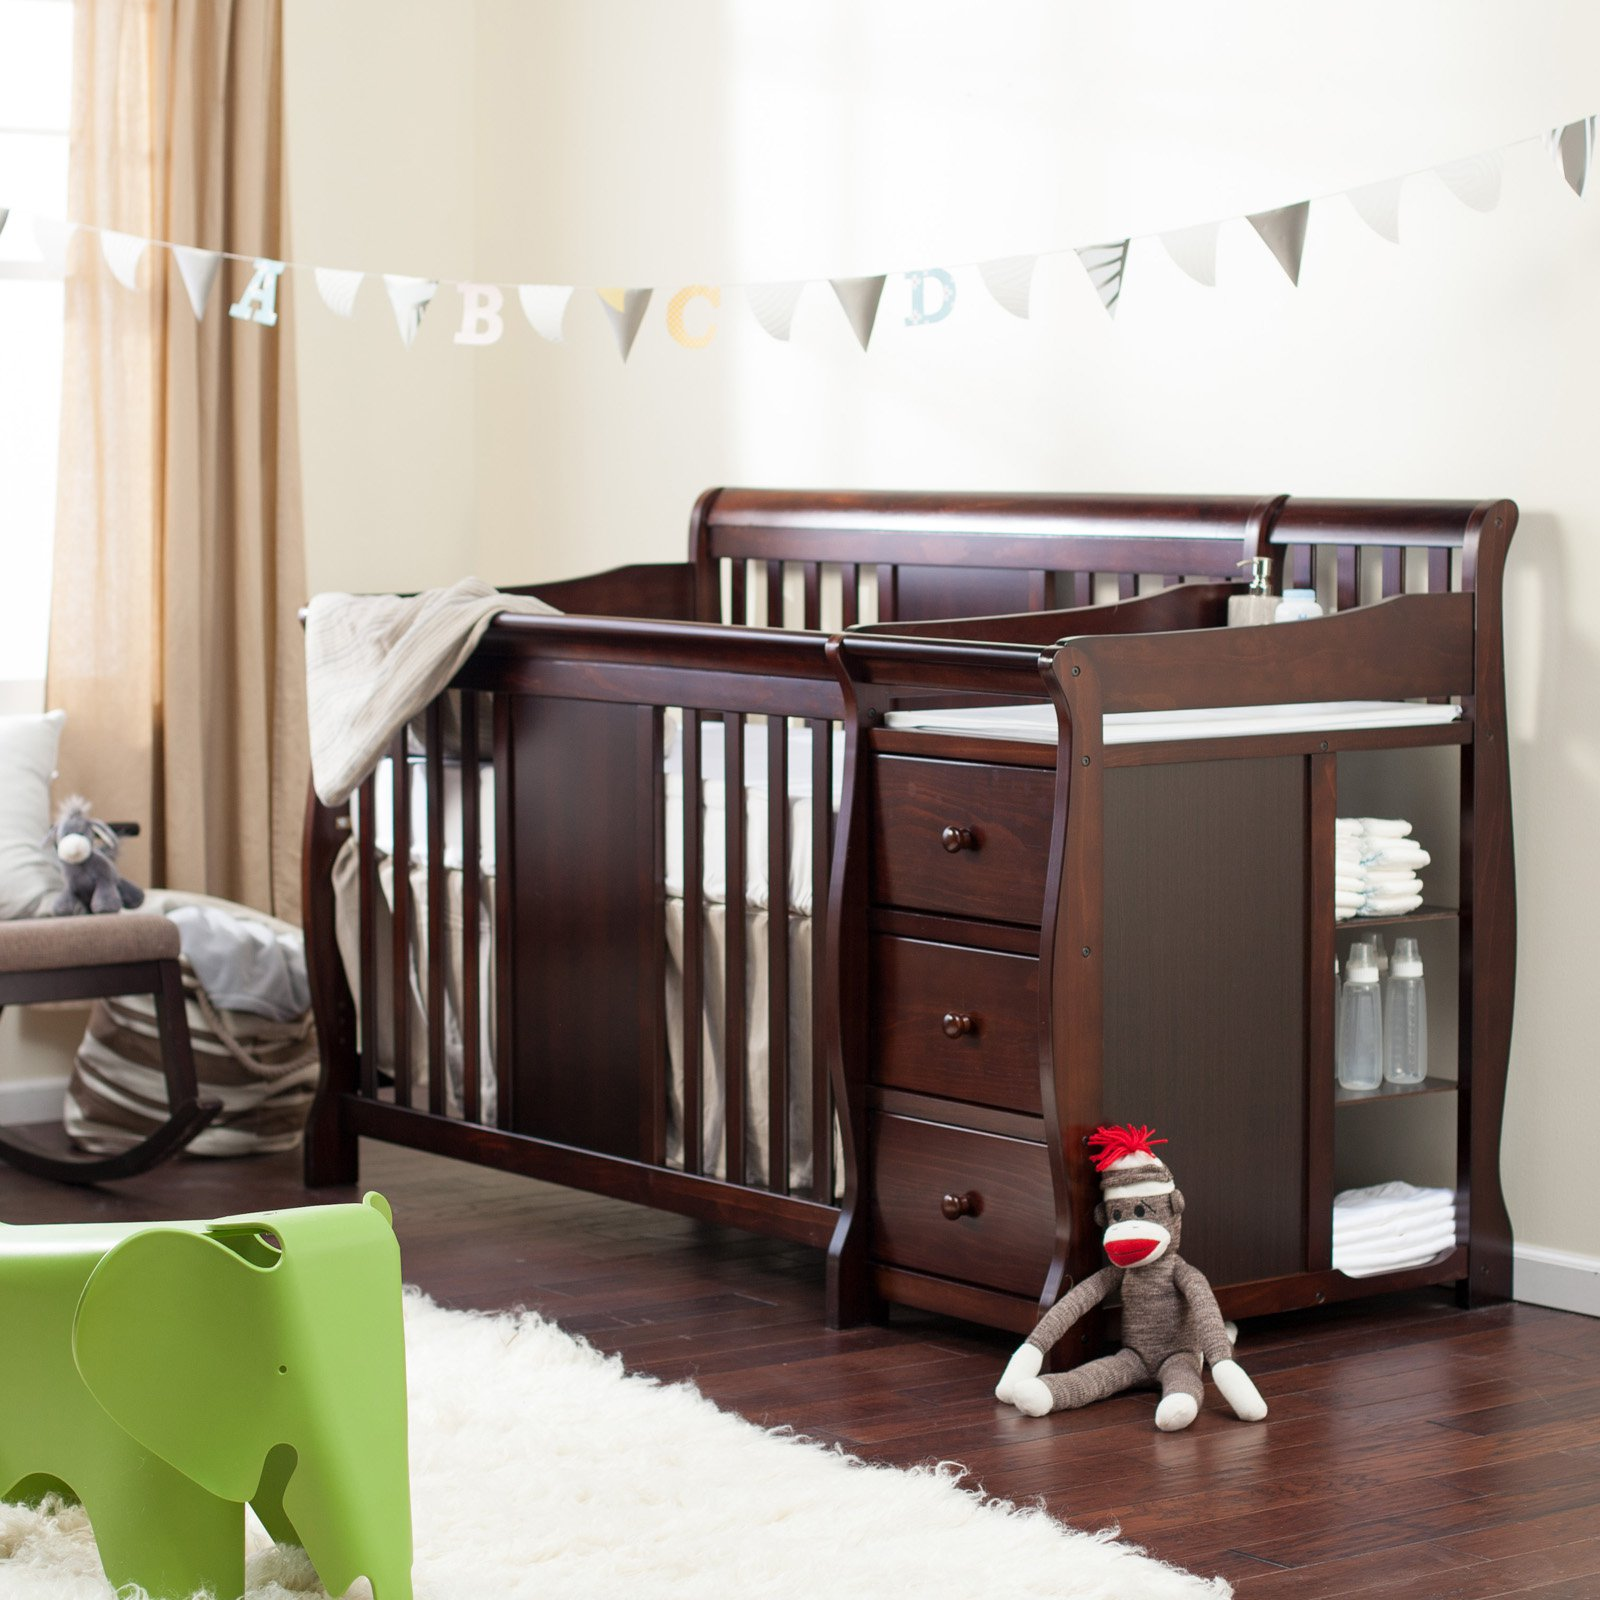 Storkcraft Calabria 4 in 1 Convertible Crib N Changer Espresso